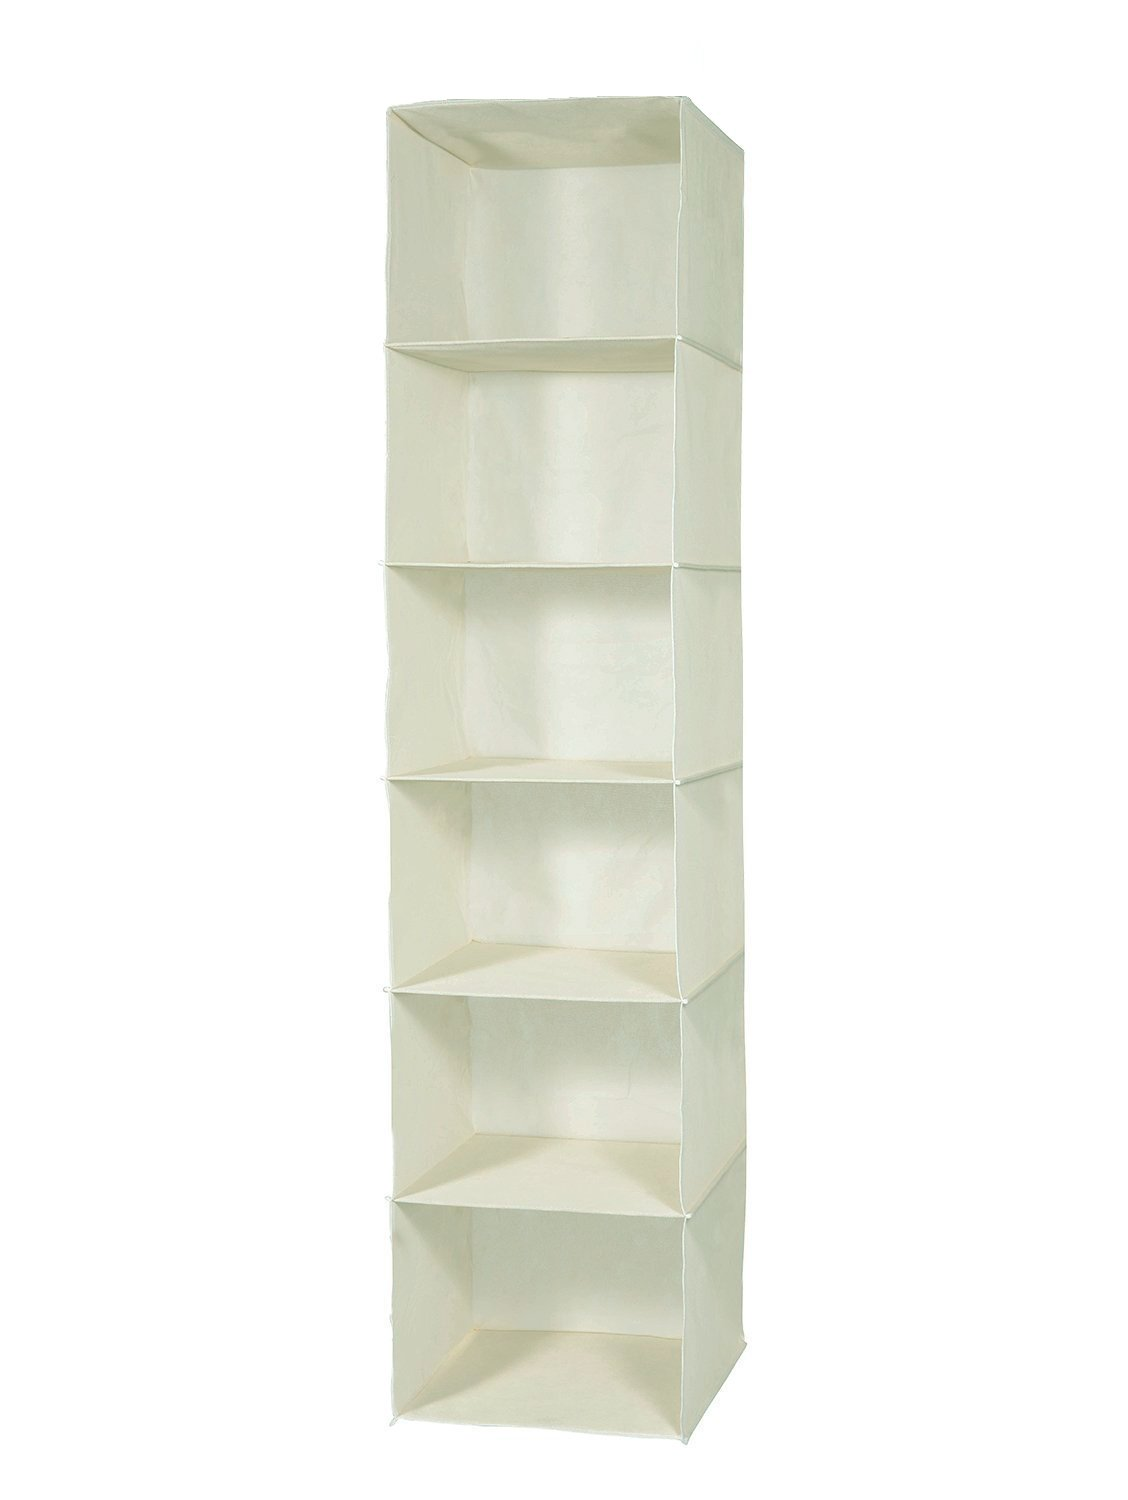 Luxehome Fabric 6 Shelves Hanging Storage Accessory Organizer (beige) …